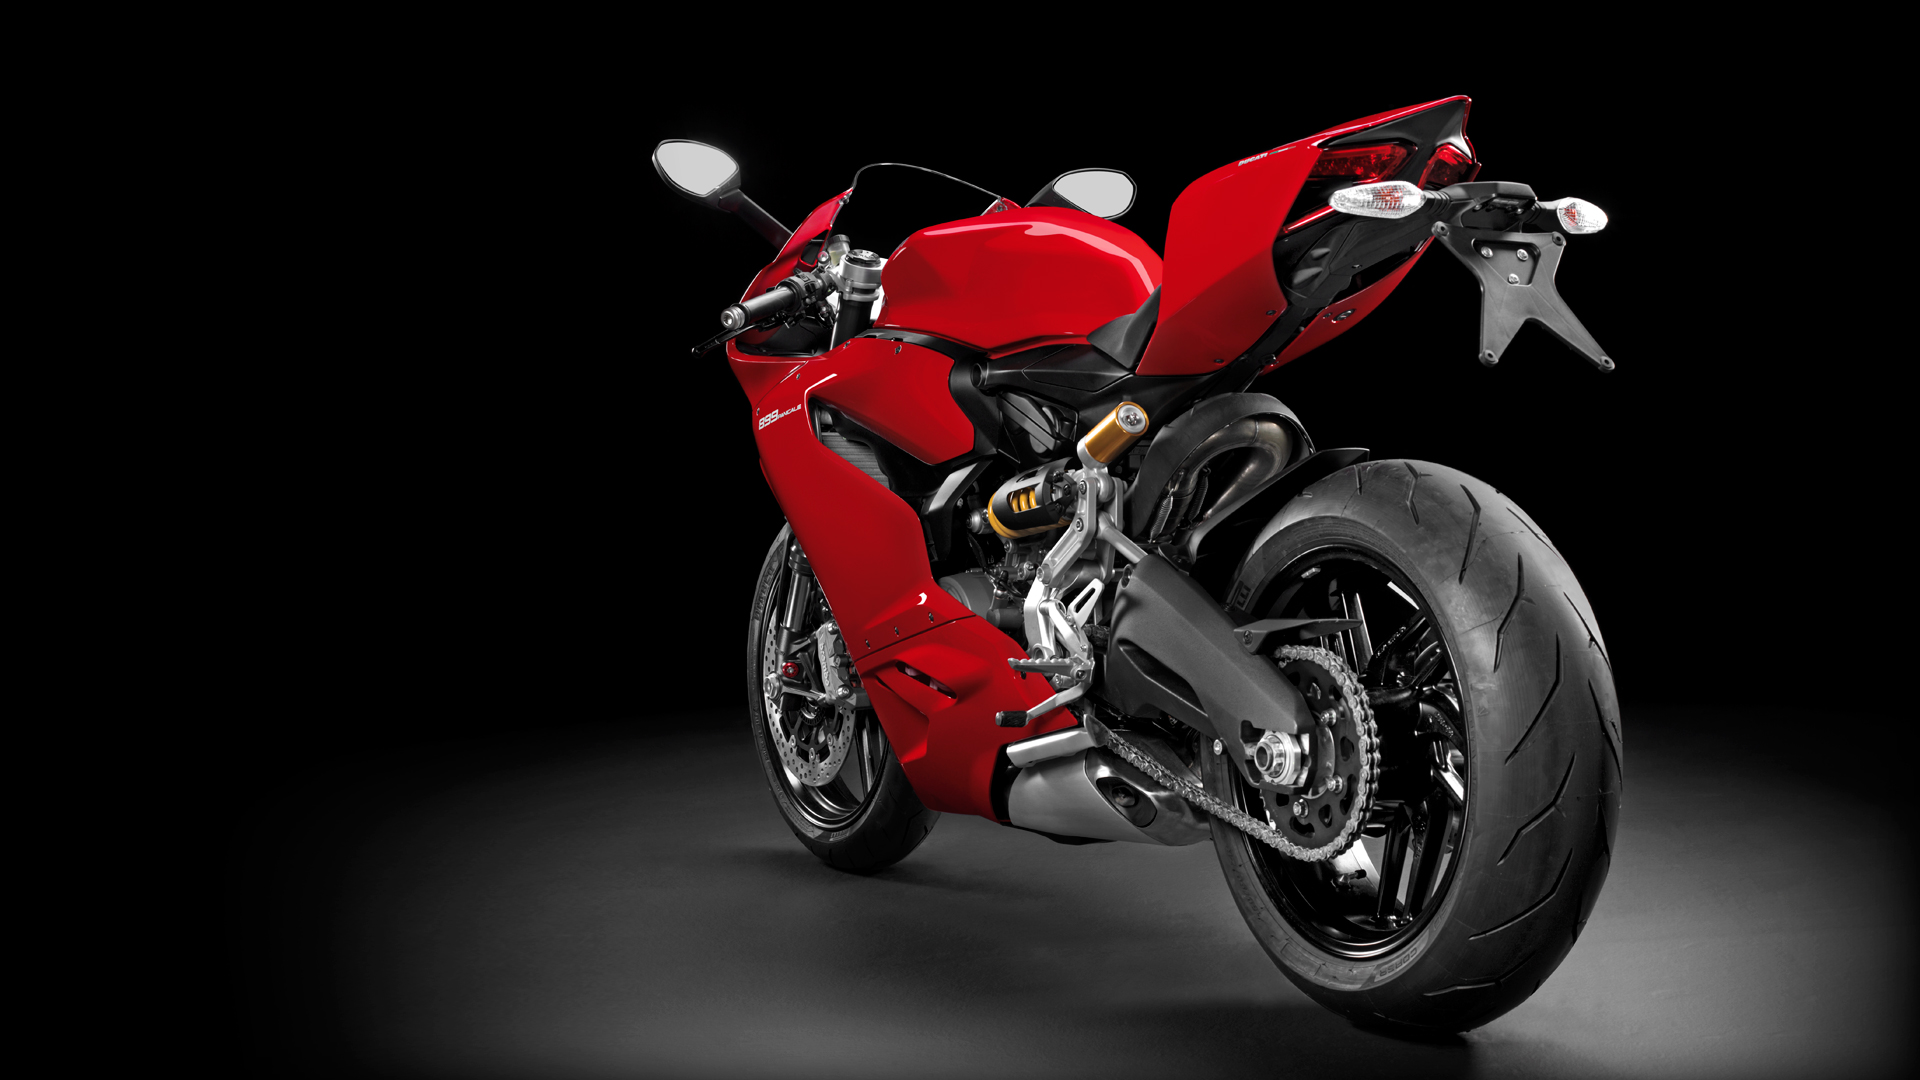 ... Download Gorgeous Ducati Superbike 899 Panigale Front View HD Desktop Wallpaper Motorcycle Ducati ducati 899 panigale ...